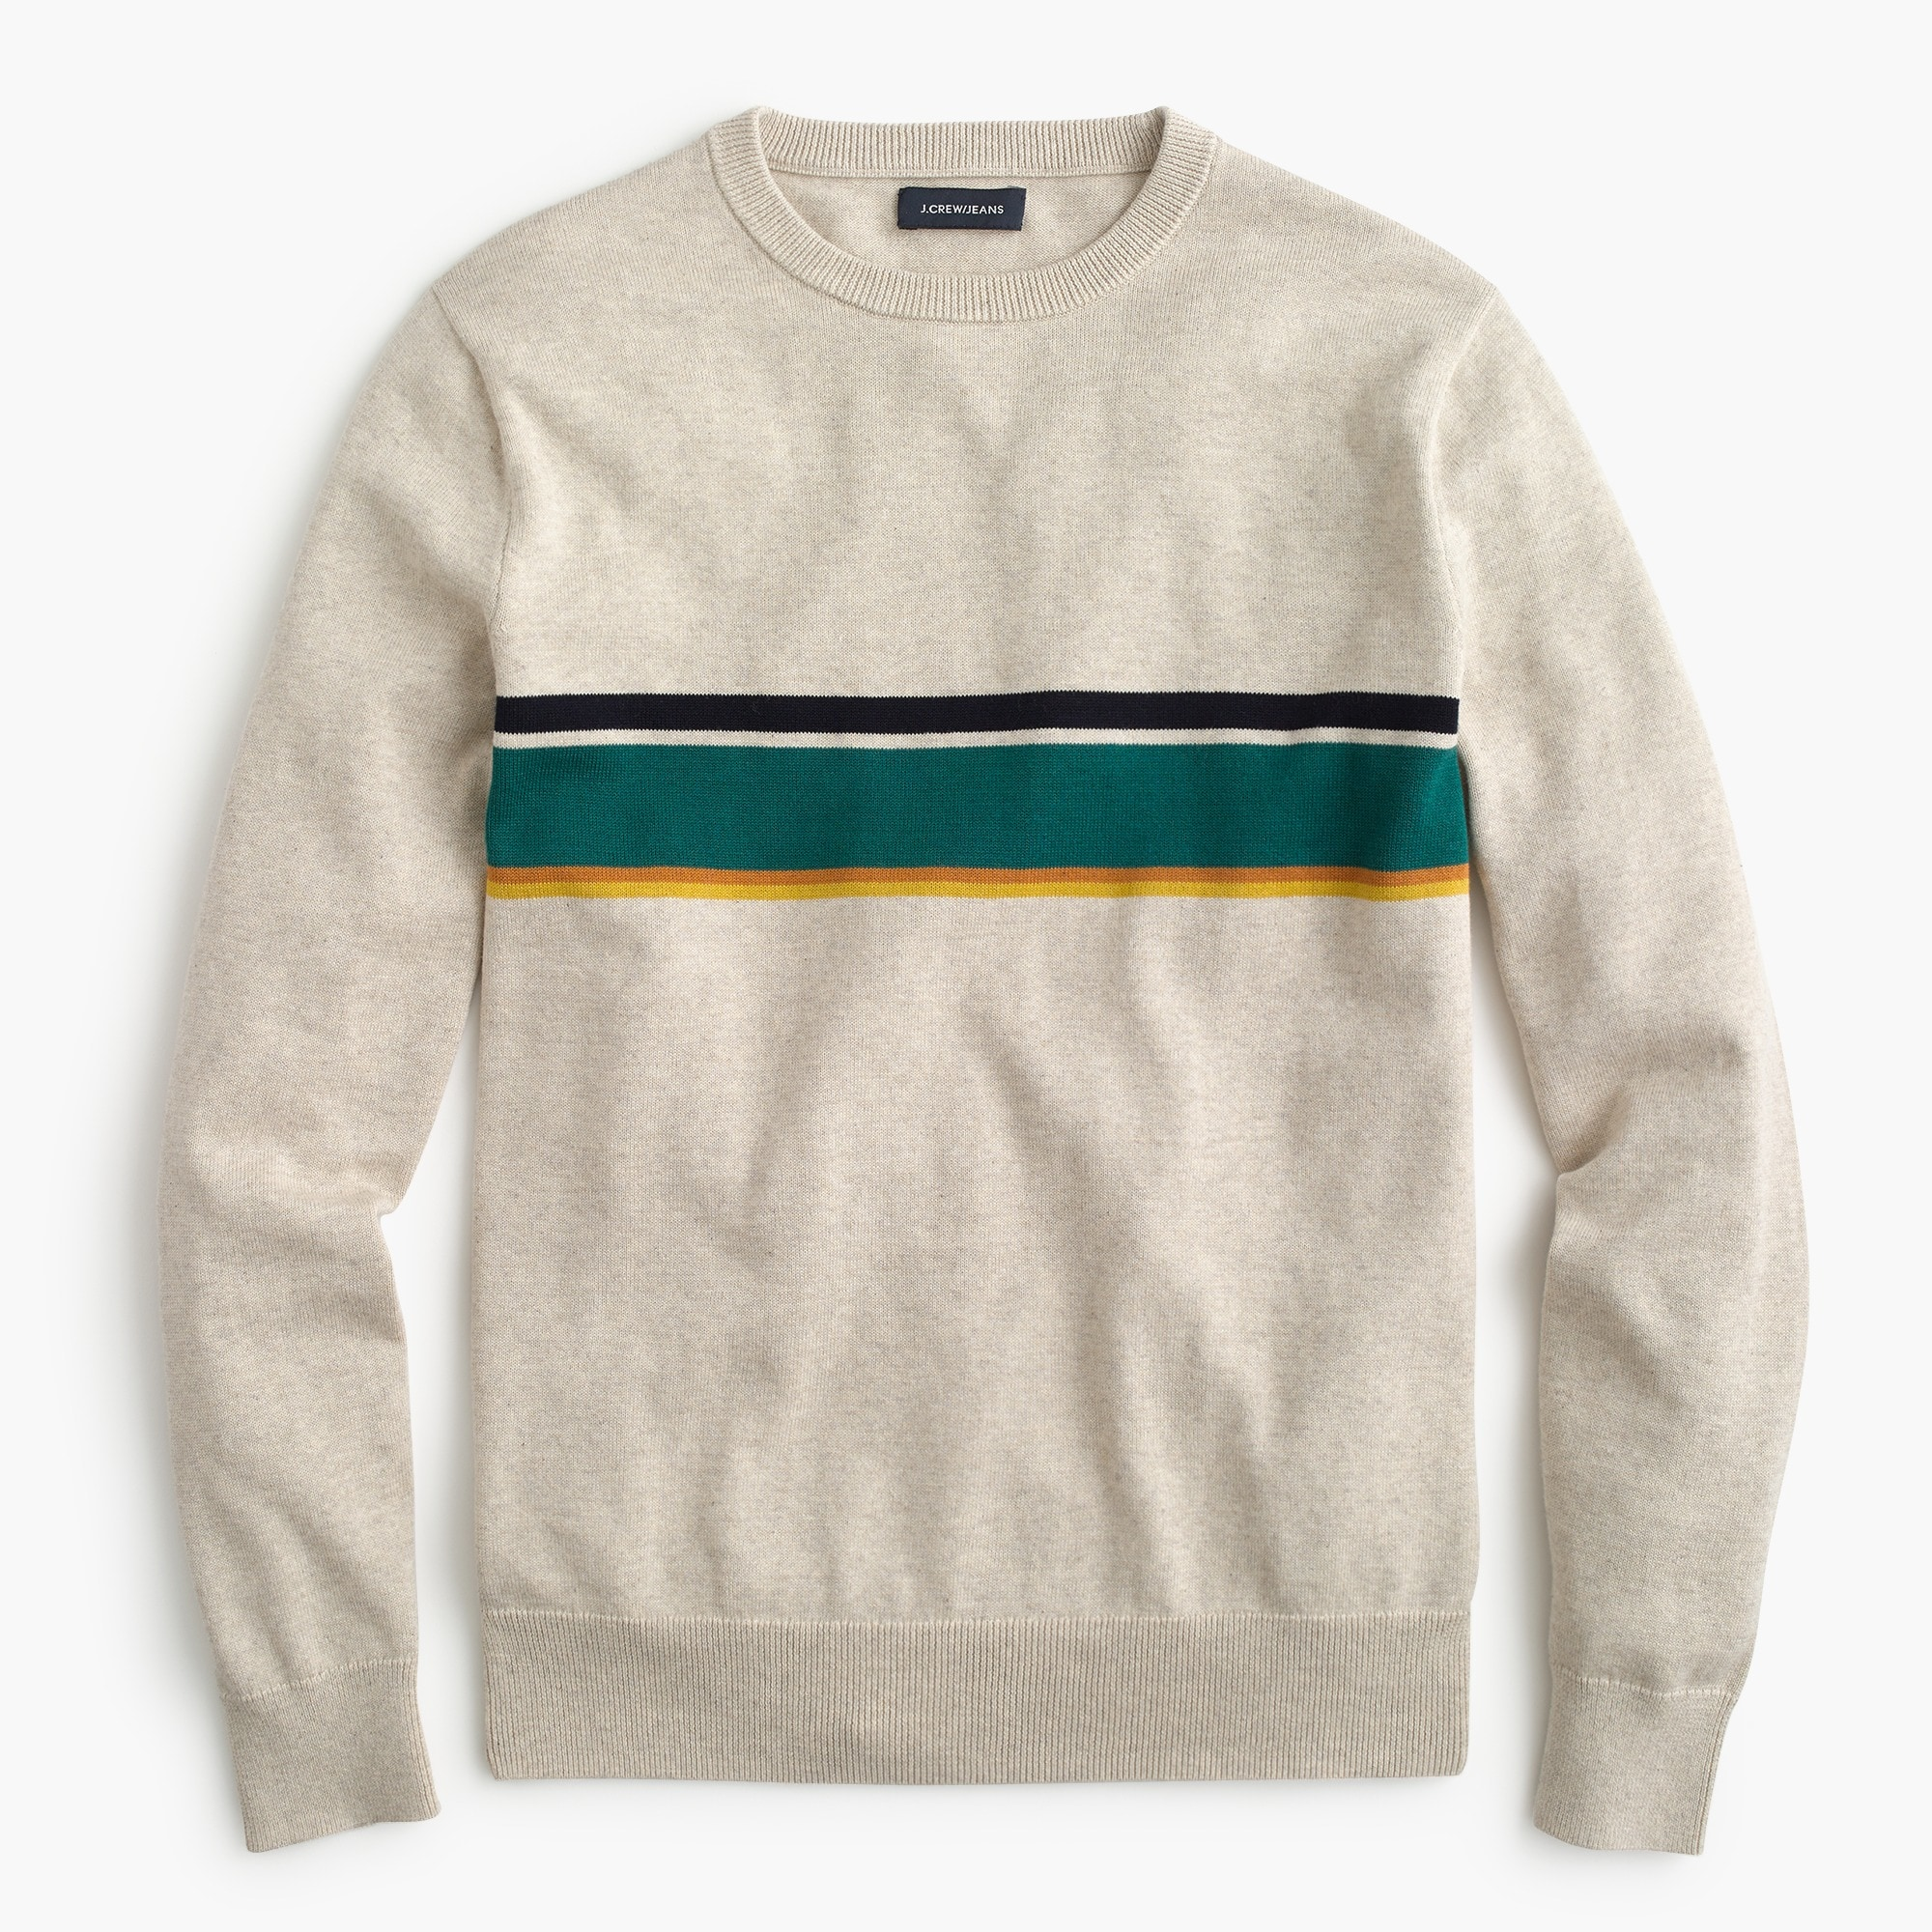 Cotton crewneck sweater in multicolor stripe